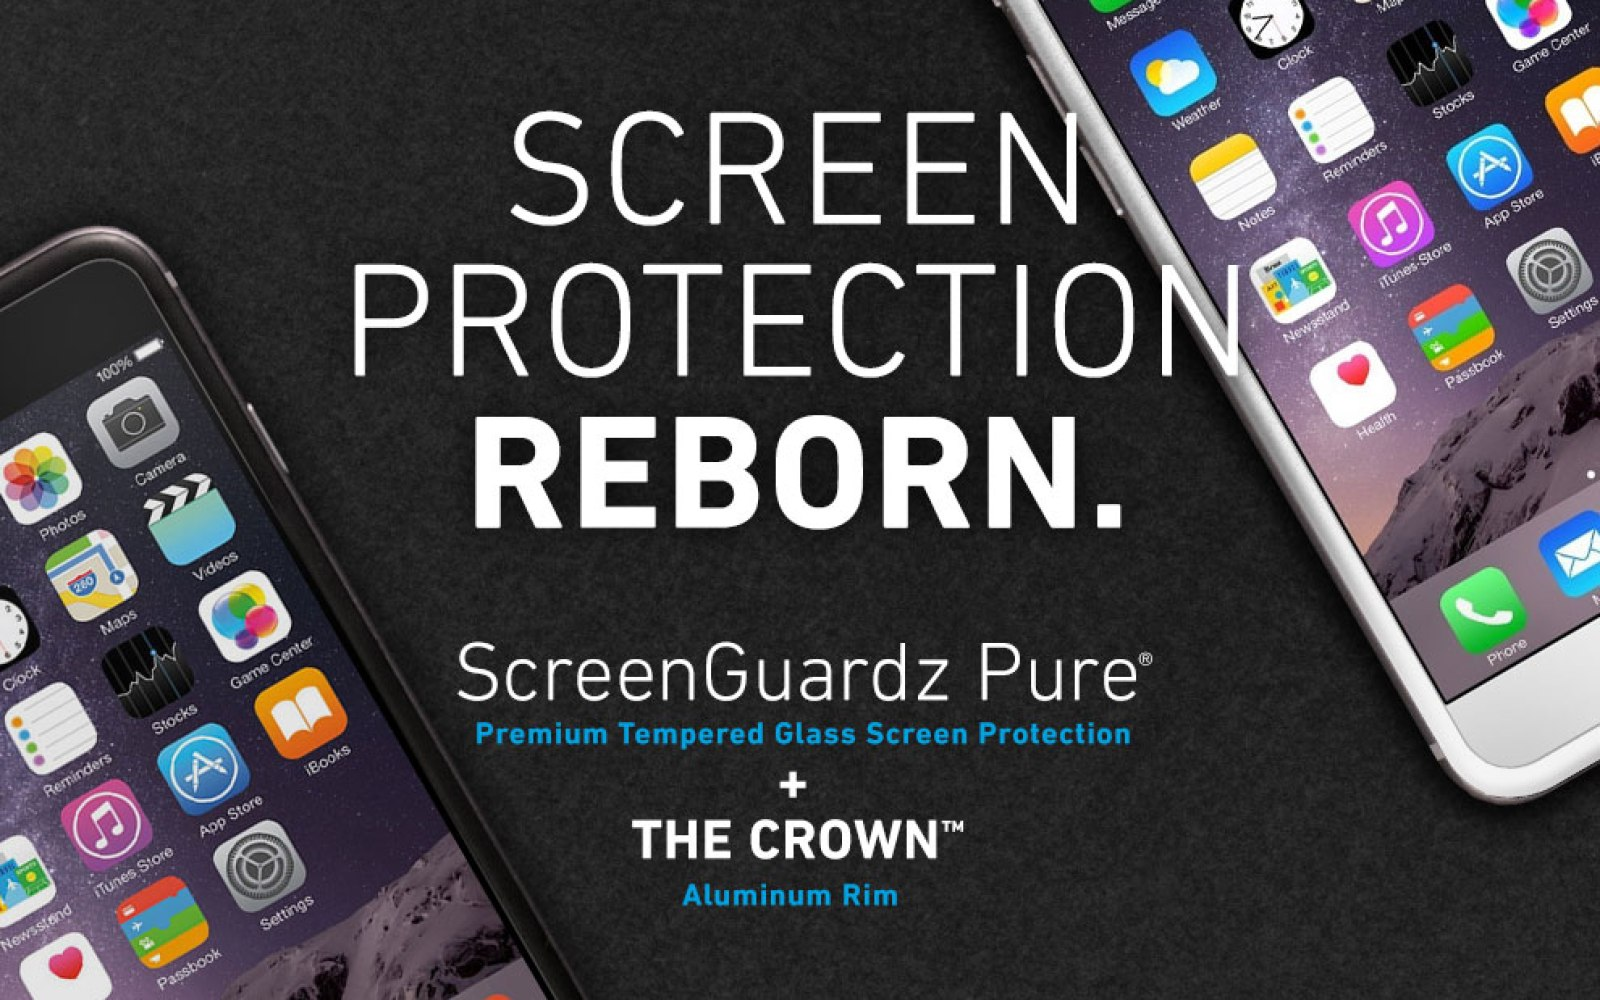 BodyGuardz is now shipping its innovative solution for protecting the iPhone 6/Plus screen